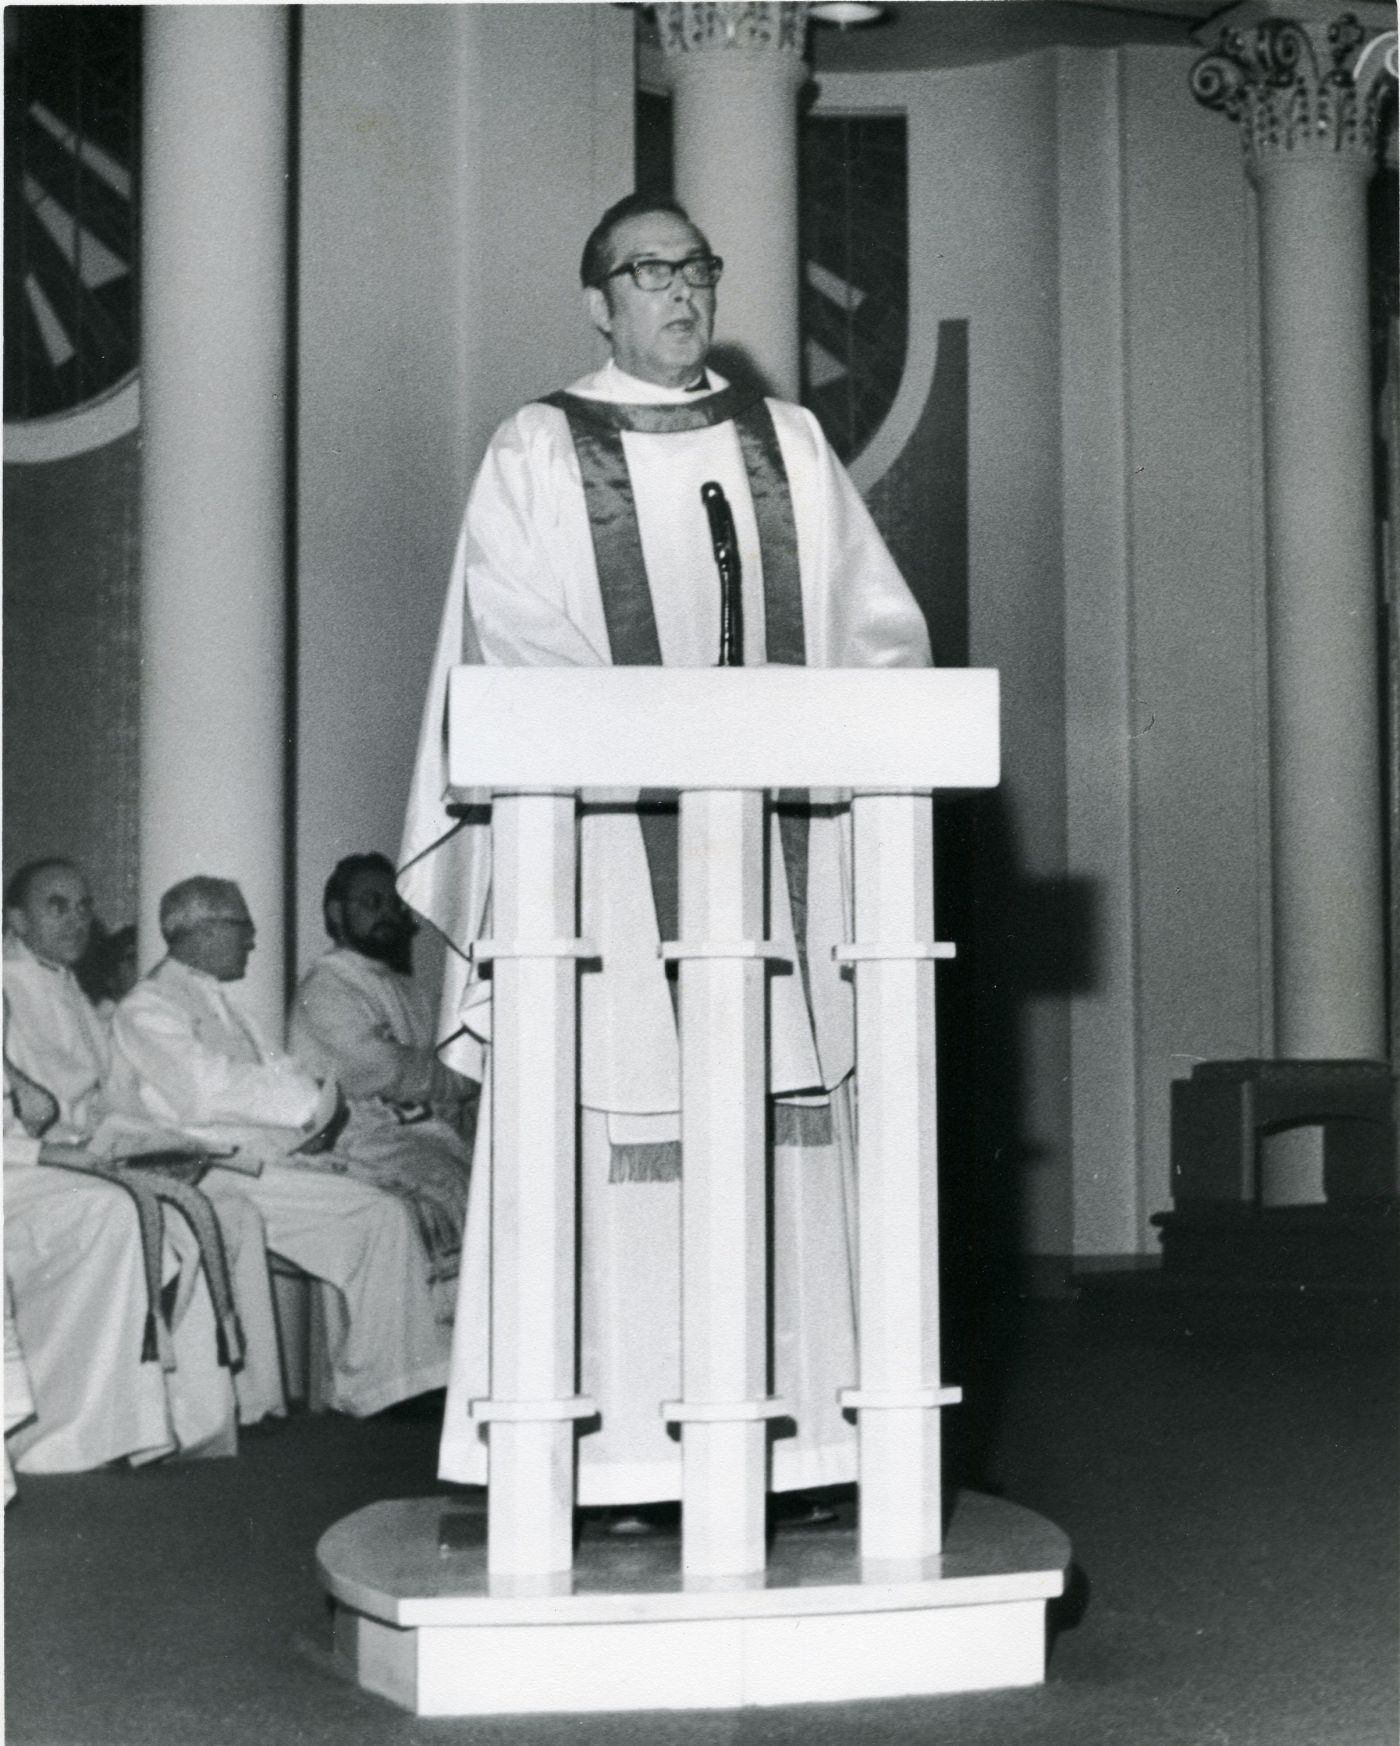 Black and white photograph of a priest clothed in white religious robes. He is standing at a church pulpit.